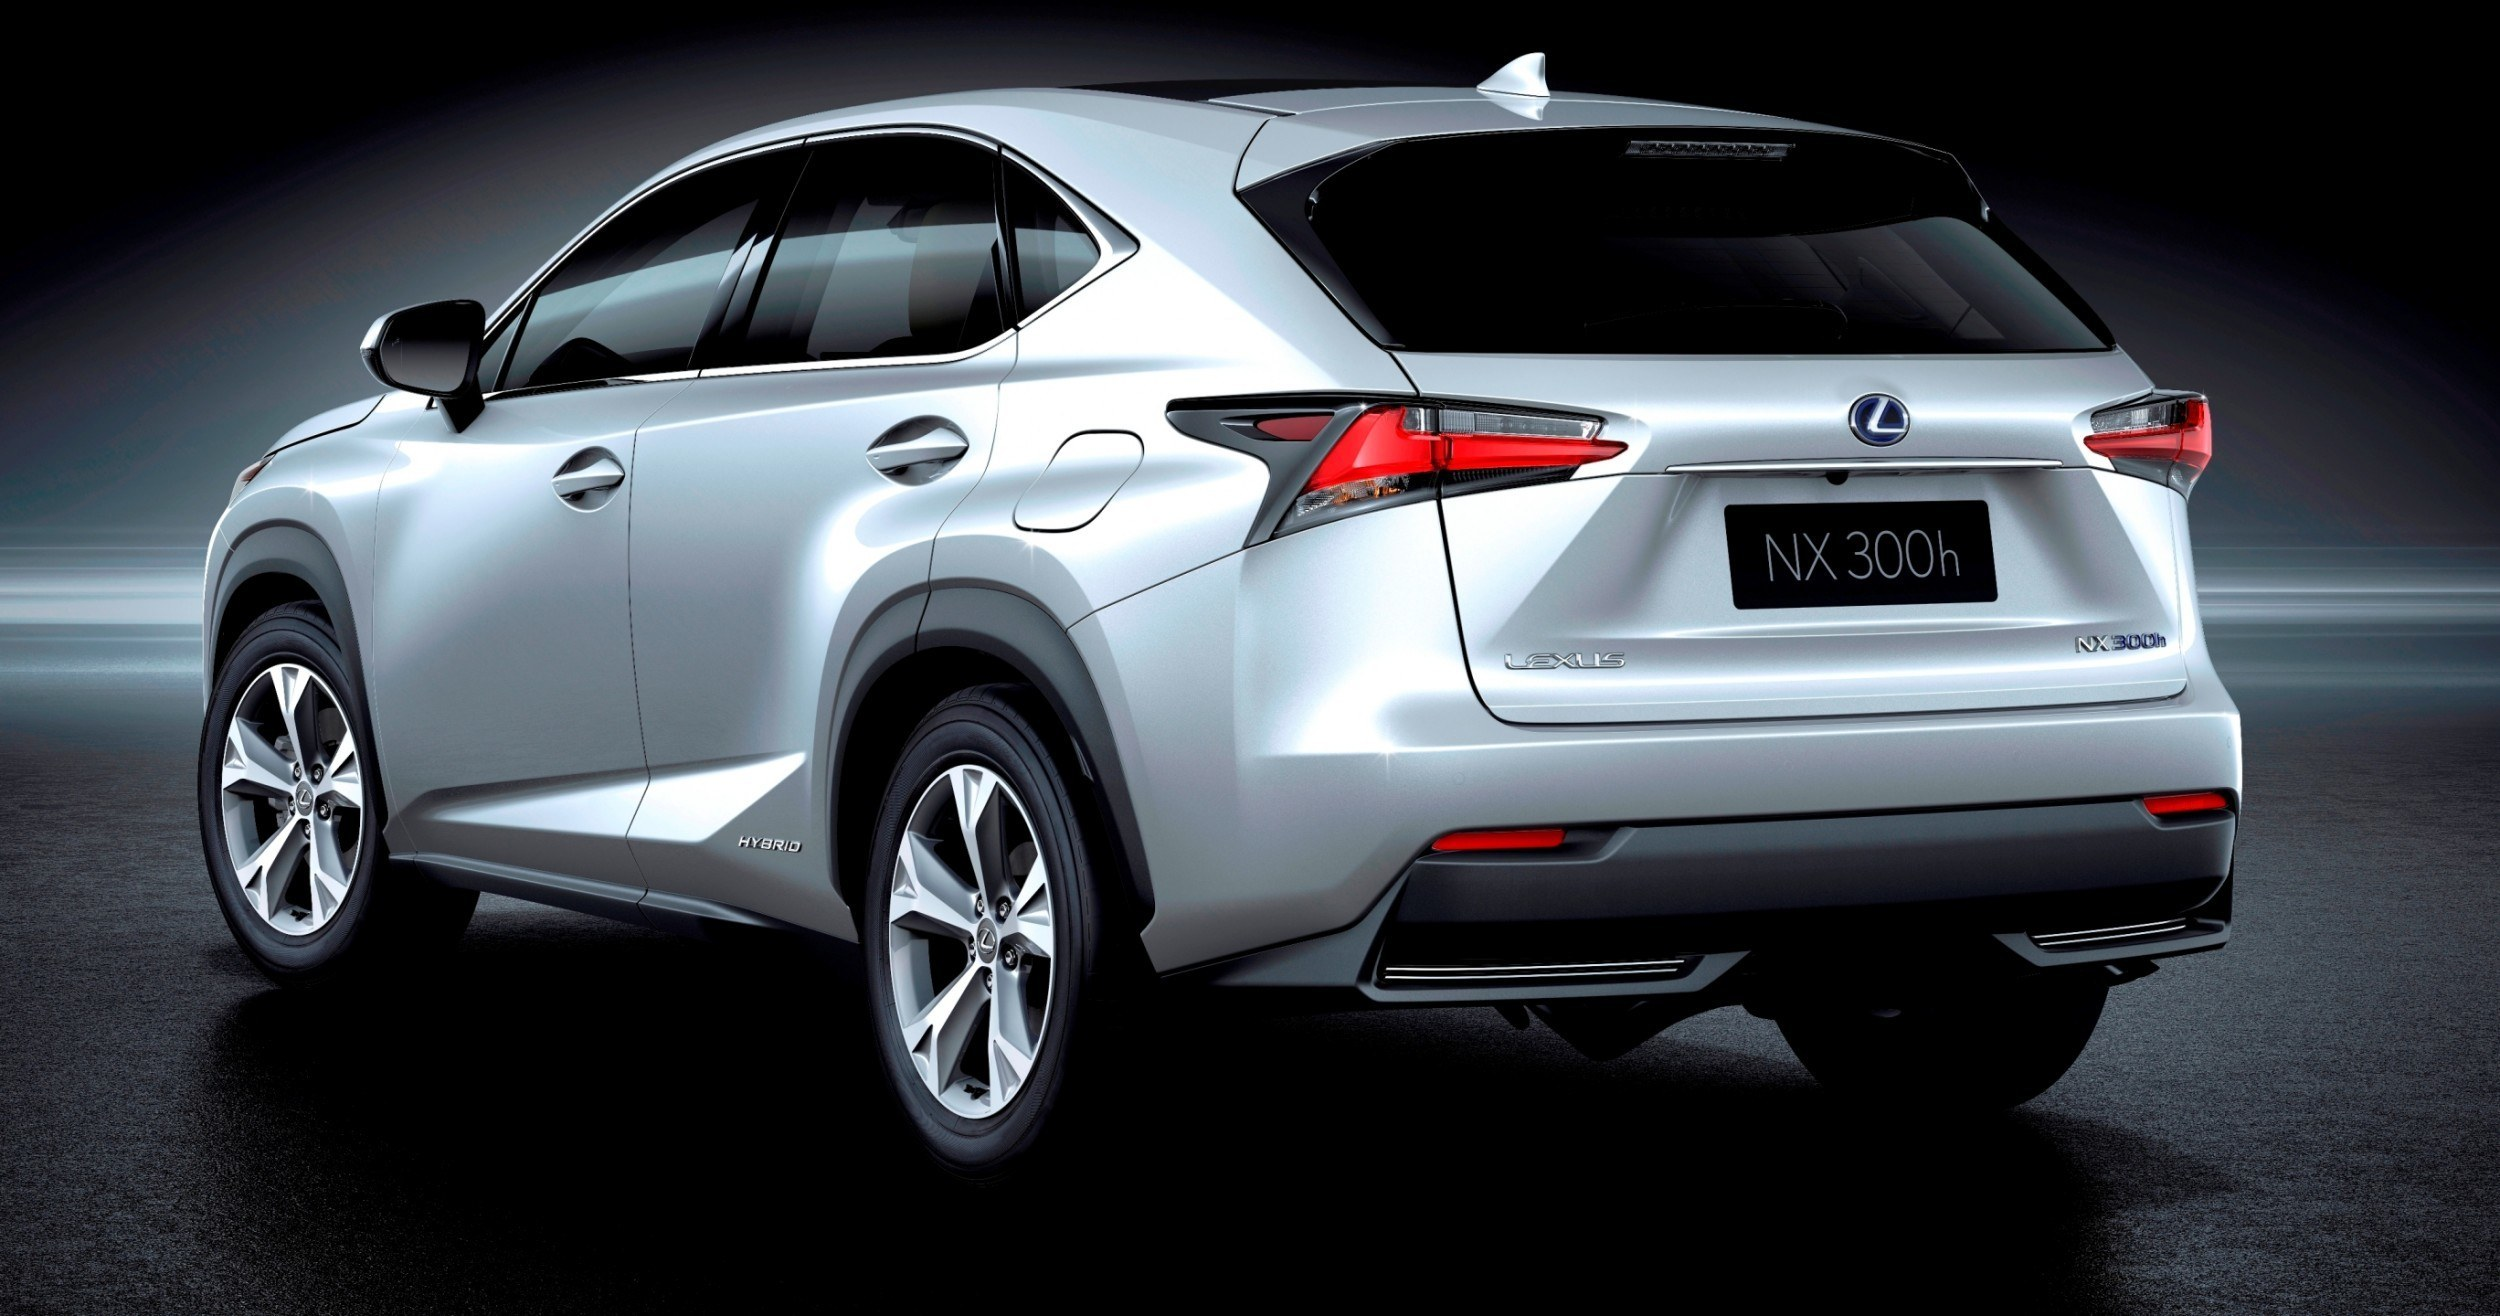 Nissan Ft Lauderdale Lexus Nx200 Malaysia | Autos Post